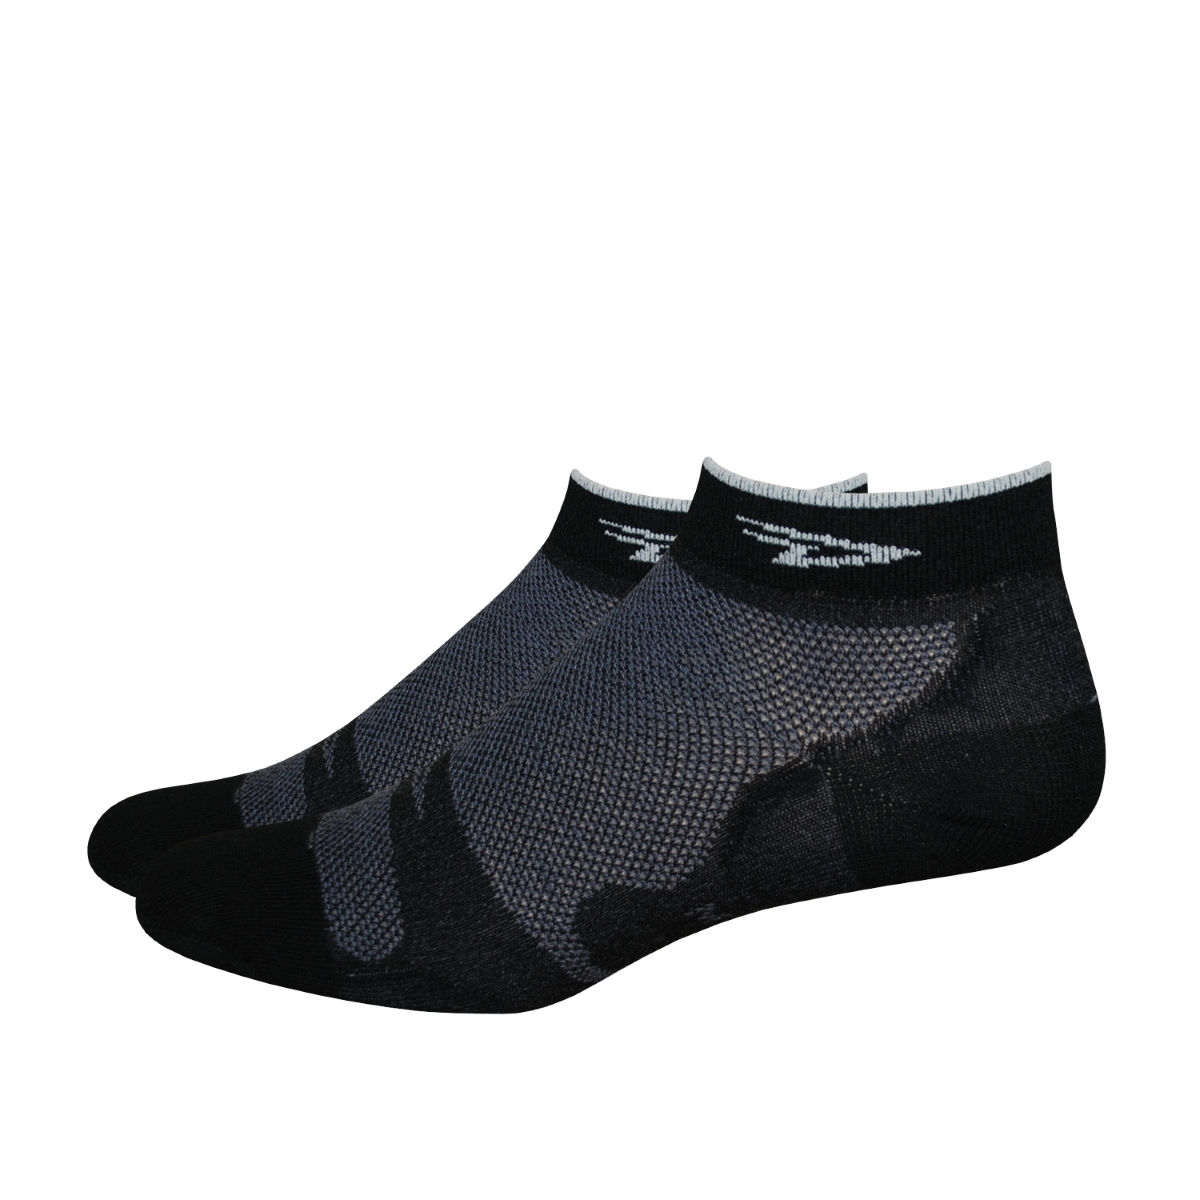 DeFeet Levitator Lite Low Cuff Socks